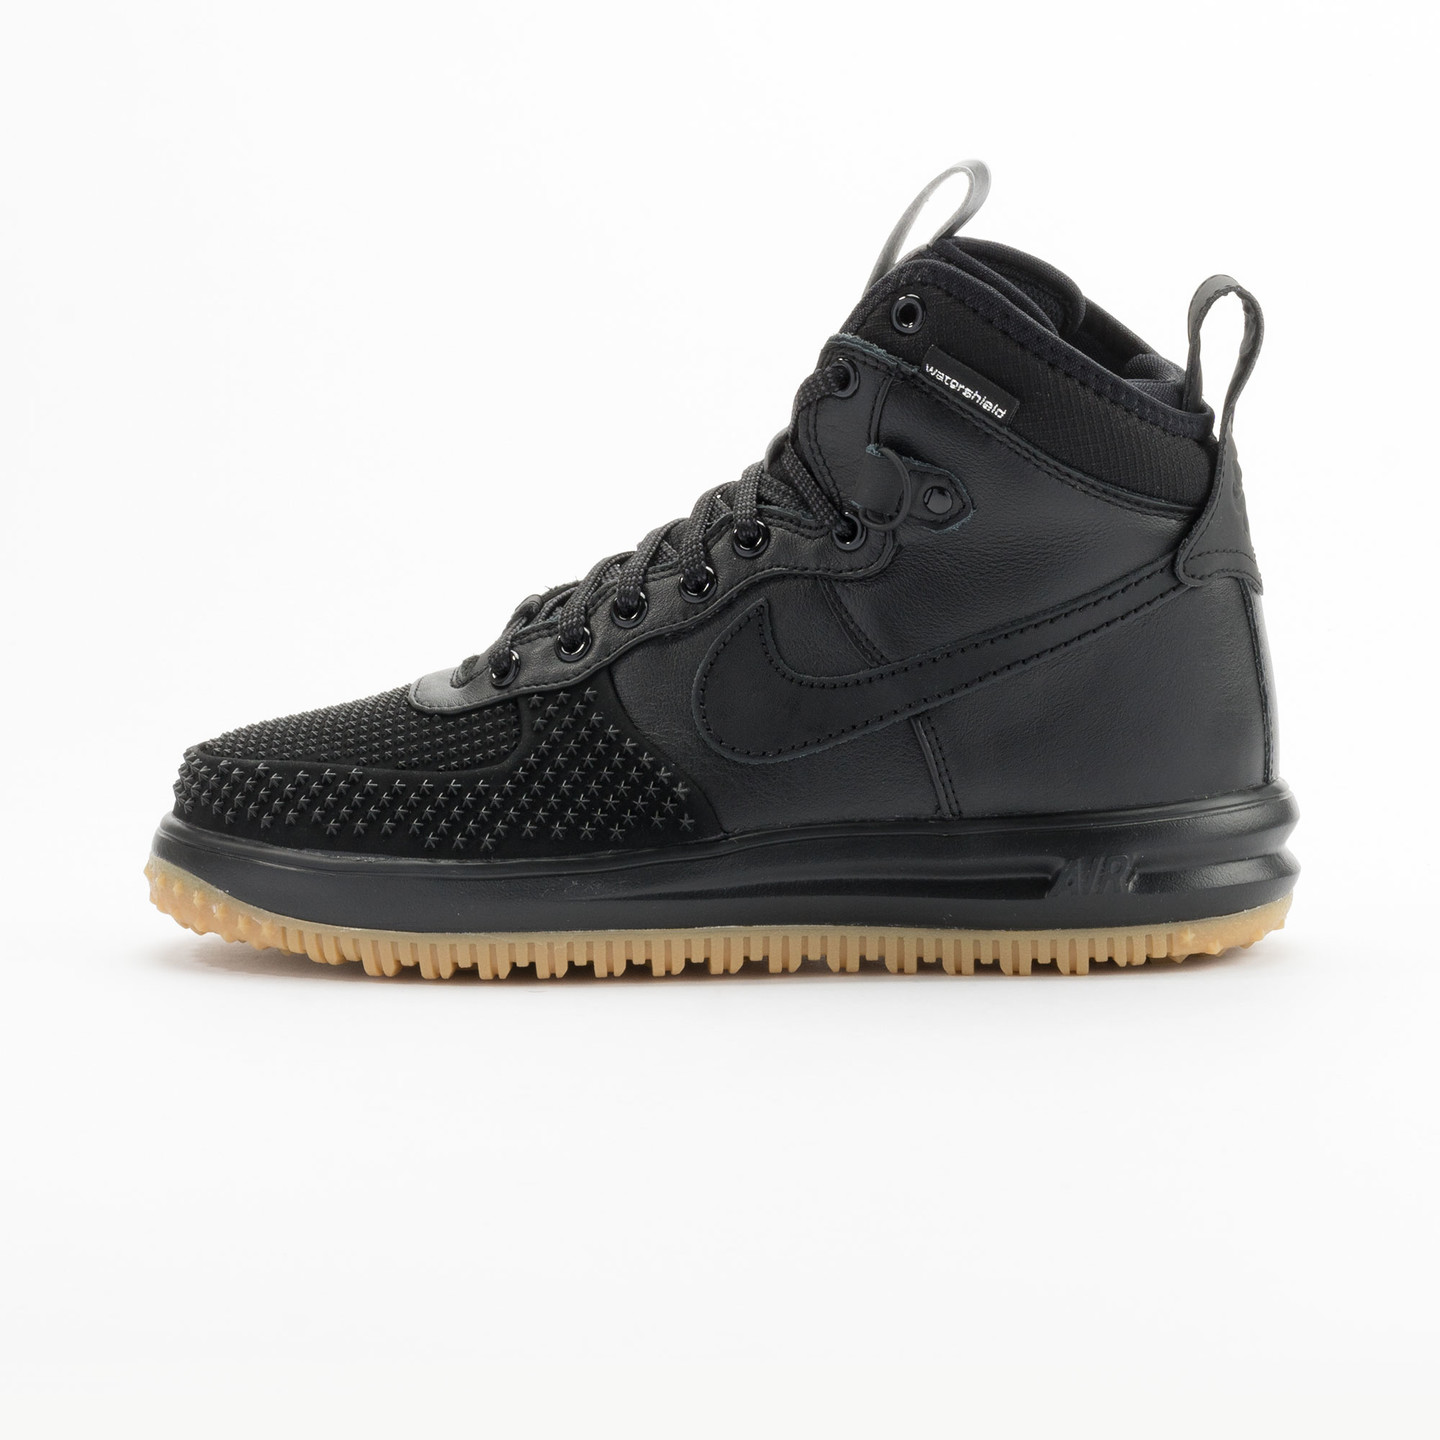 Nike Lunar Force 1 Duckboot Black / Black / Gum 805899-003-42.5